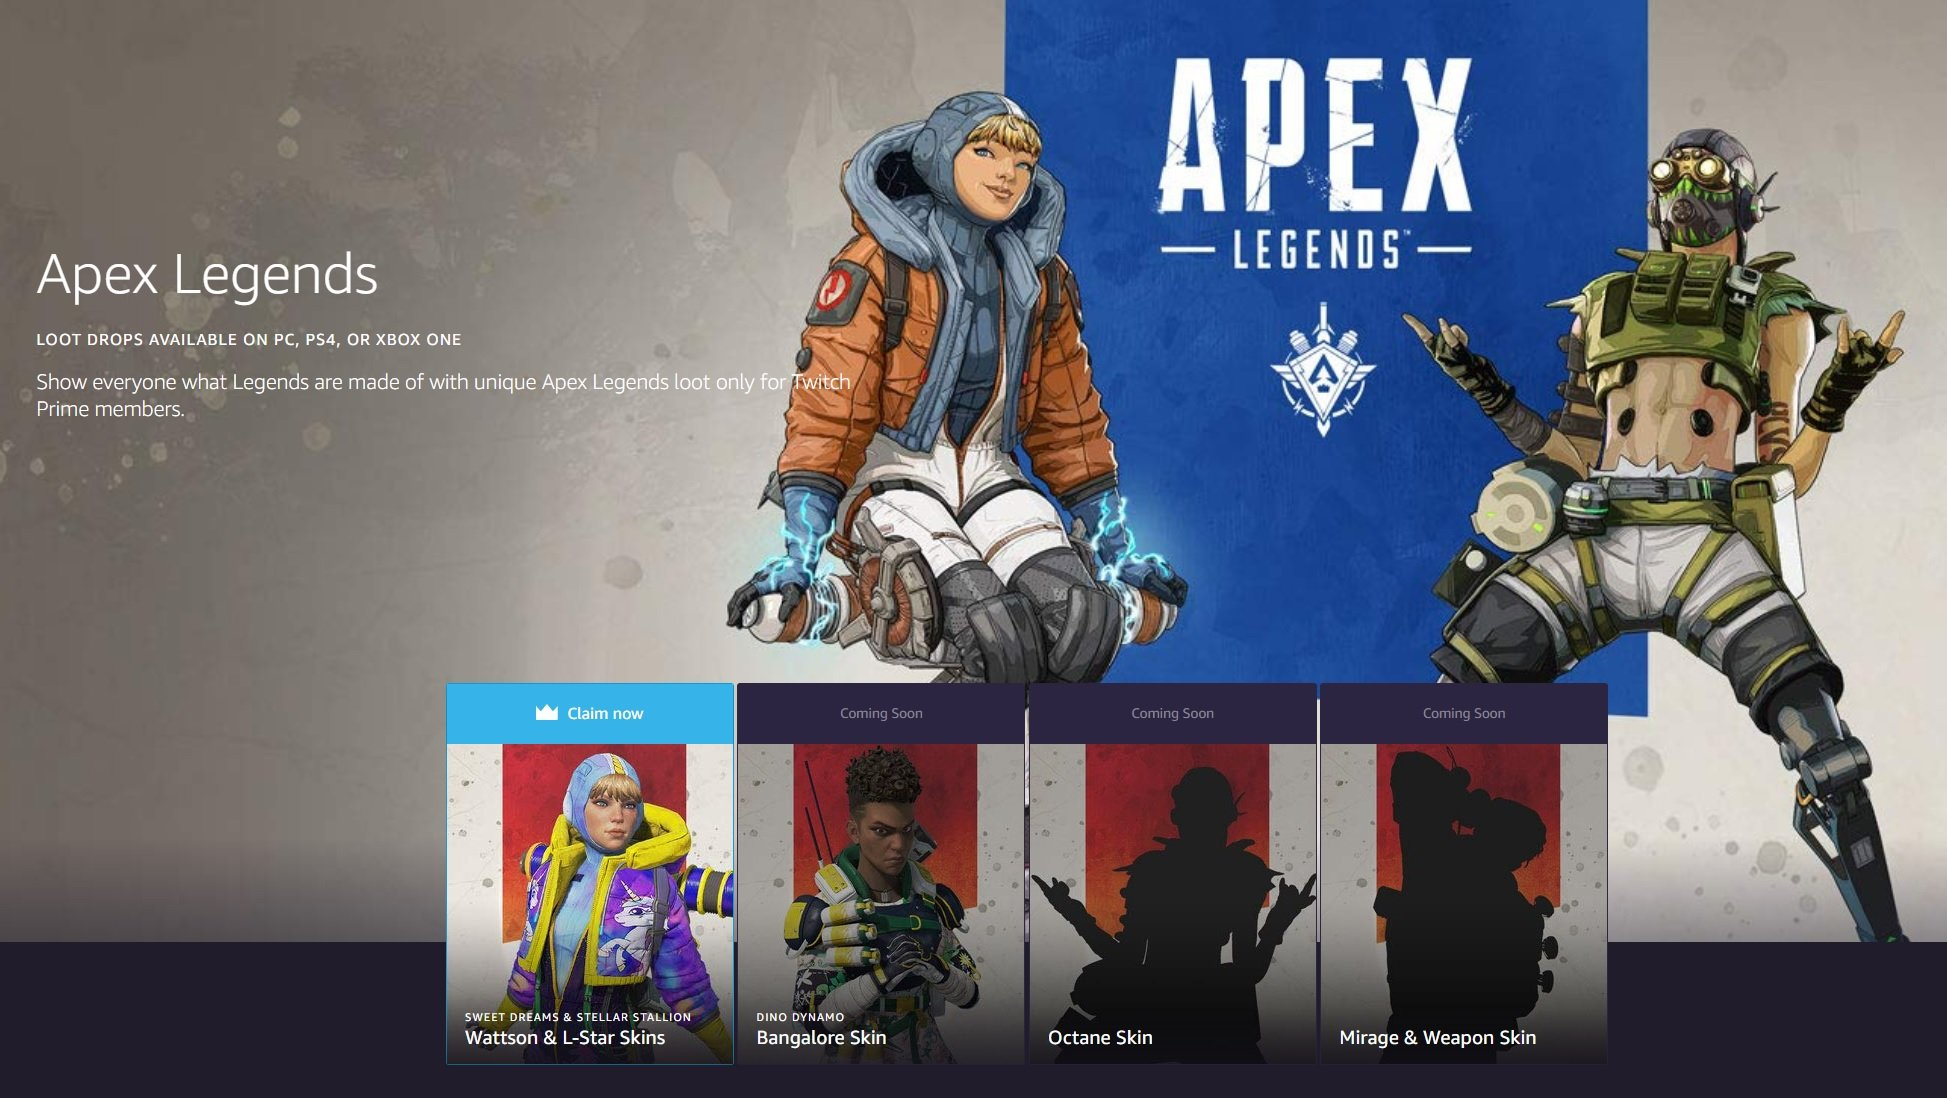 How to redeem Apex Legends Twitch Prime skins